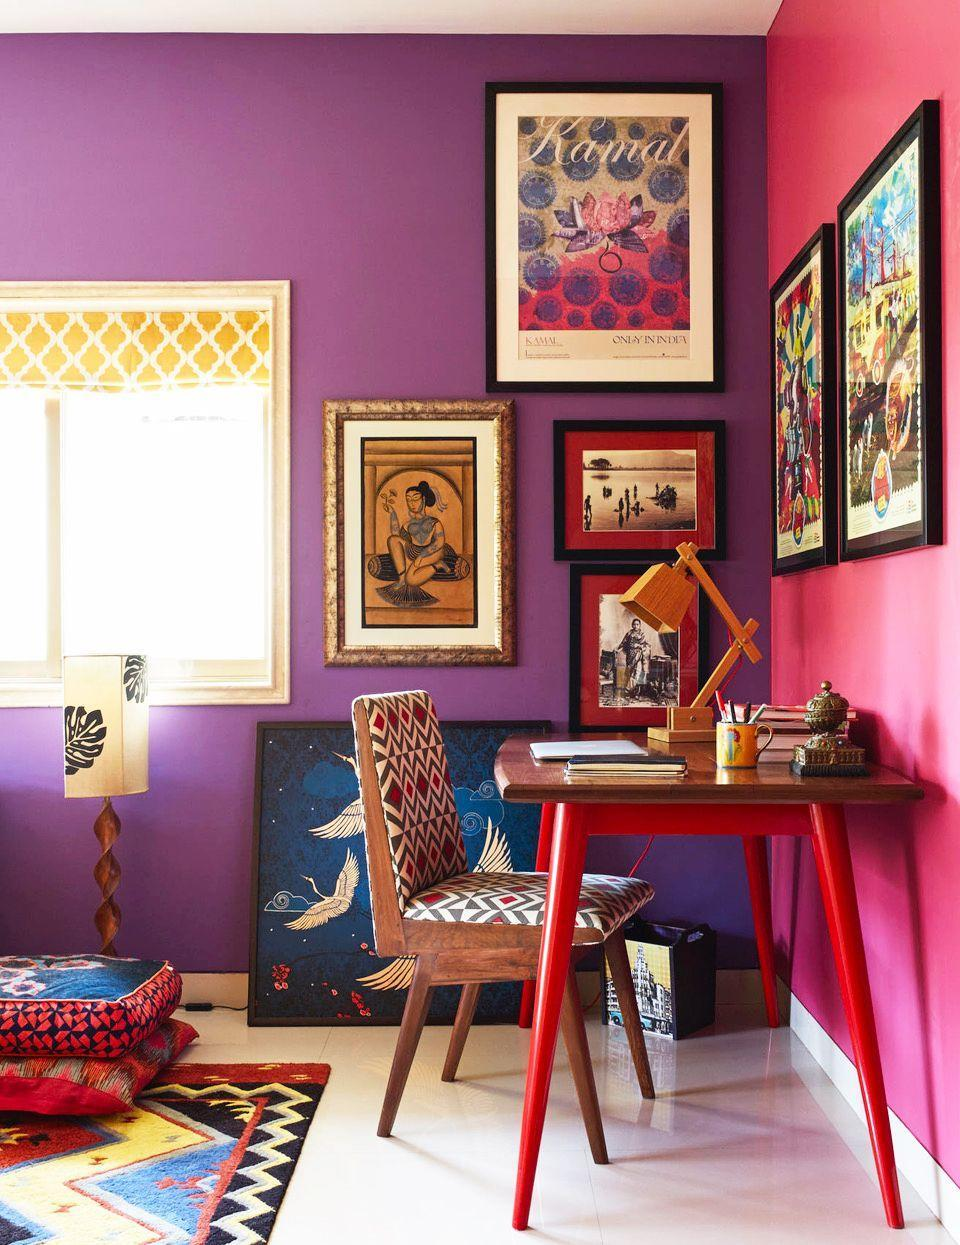 """<p>How about a vibrant fuchsia wall instead of that extra cup of coffee? Designer <a href=""""https://www.instagram.com/krsnaamehta/?hl=en"""" rel=""""nofollow noopener"""" target=""""_blank"""" data-ylk=""""slk:Krsnaa Mehta"""" class=""""link rapid-noclick-resp"""">Krsnaa Mehta</a> gave <a href=""""https://www.housebeautiful.com/design-inspiration/house-tours/a33549769/krsnaa-mehta-india-circus-home-tour-mumbai/"""" rel=""""nofollow noopener"""" target=""""_blank"""" data-ylk=""""slk:his"""" class=""""link rapid-noclick-resp"""">his</a> lackluster home office a surge of energy with jewel tone statement walls, plenty of artwork, and prints throughout. </p>"""